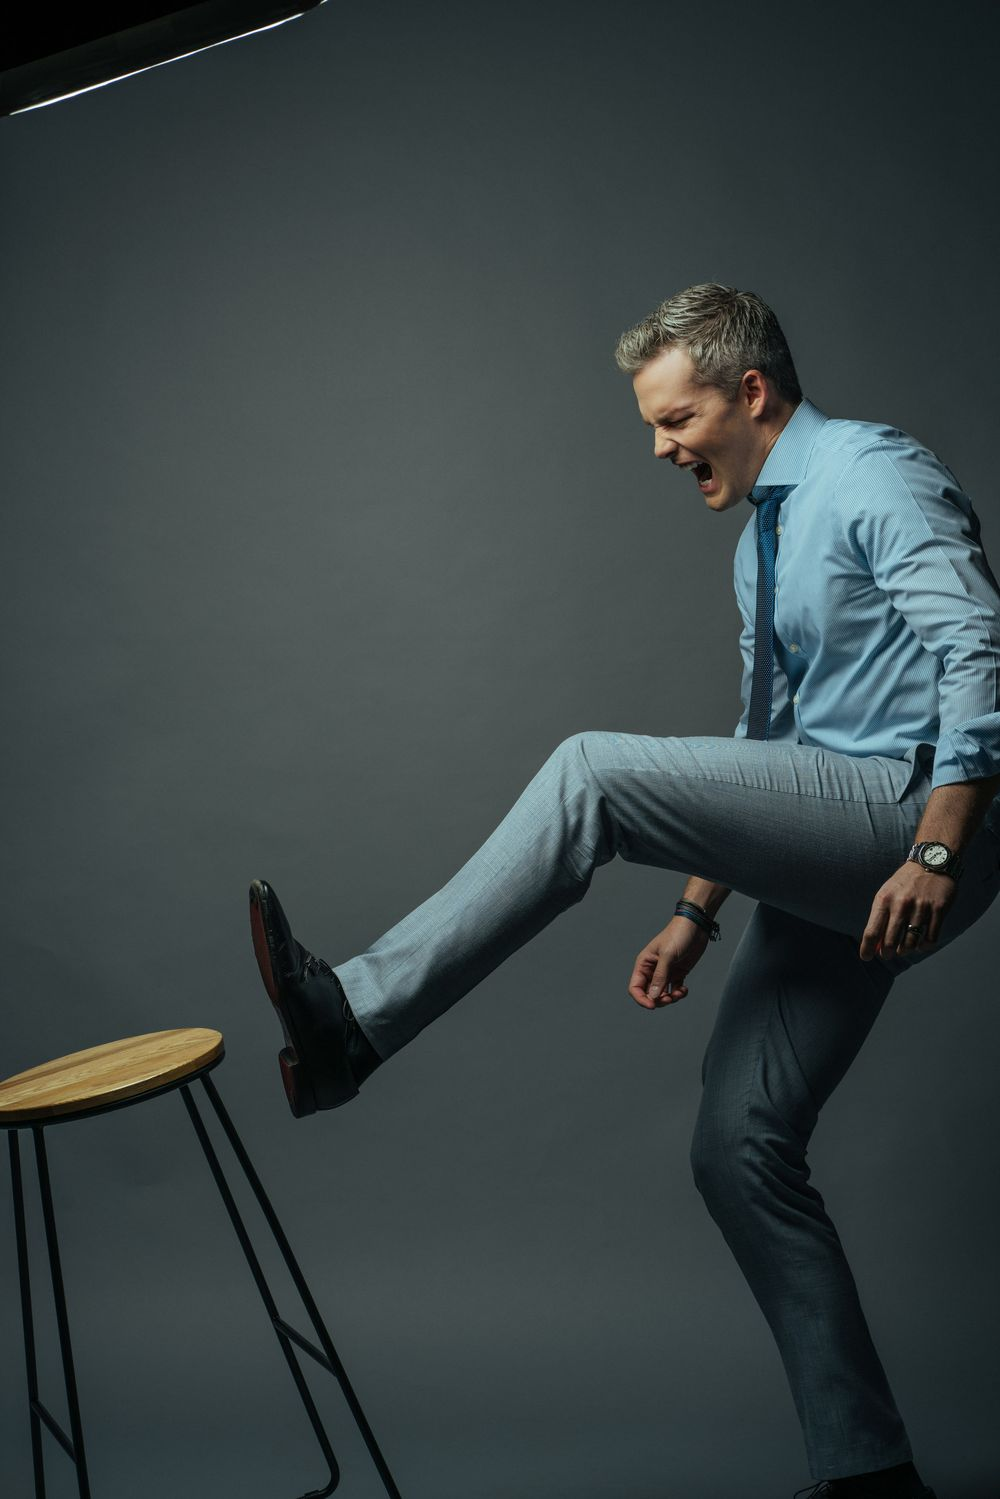 Ryan Serhant shot by Bill Chen photography